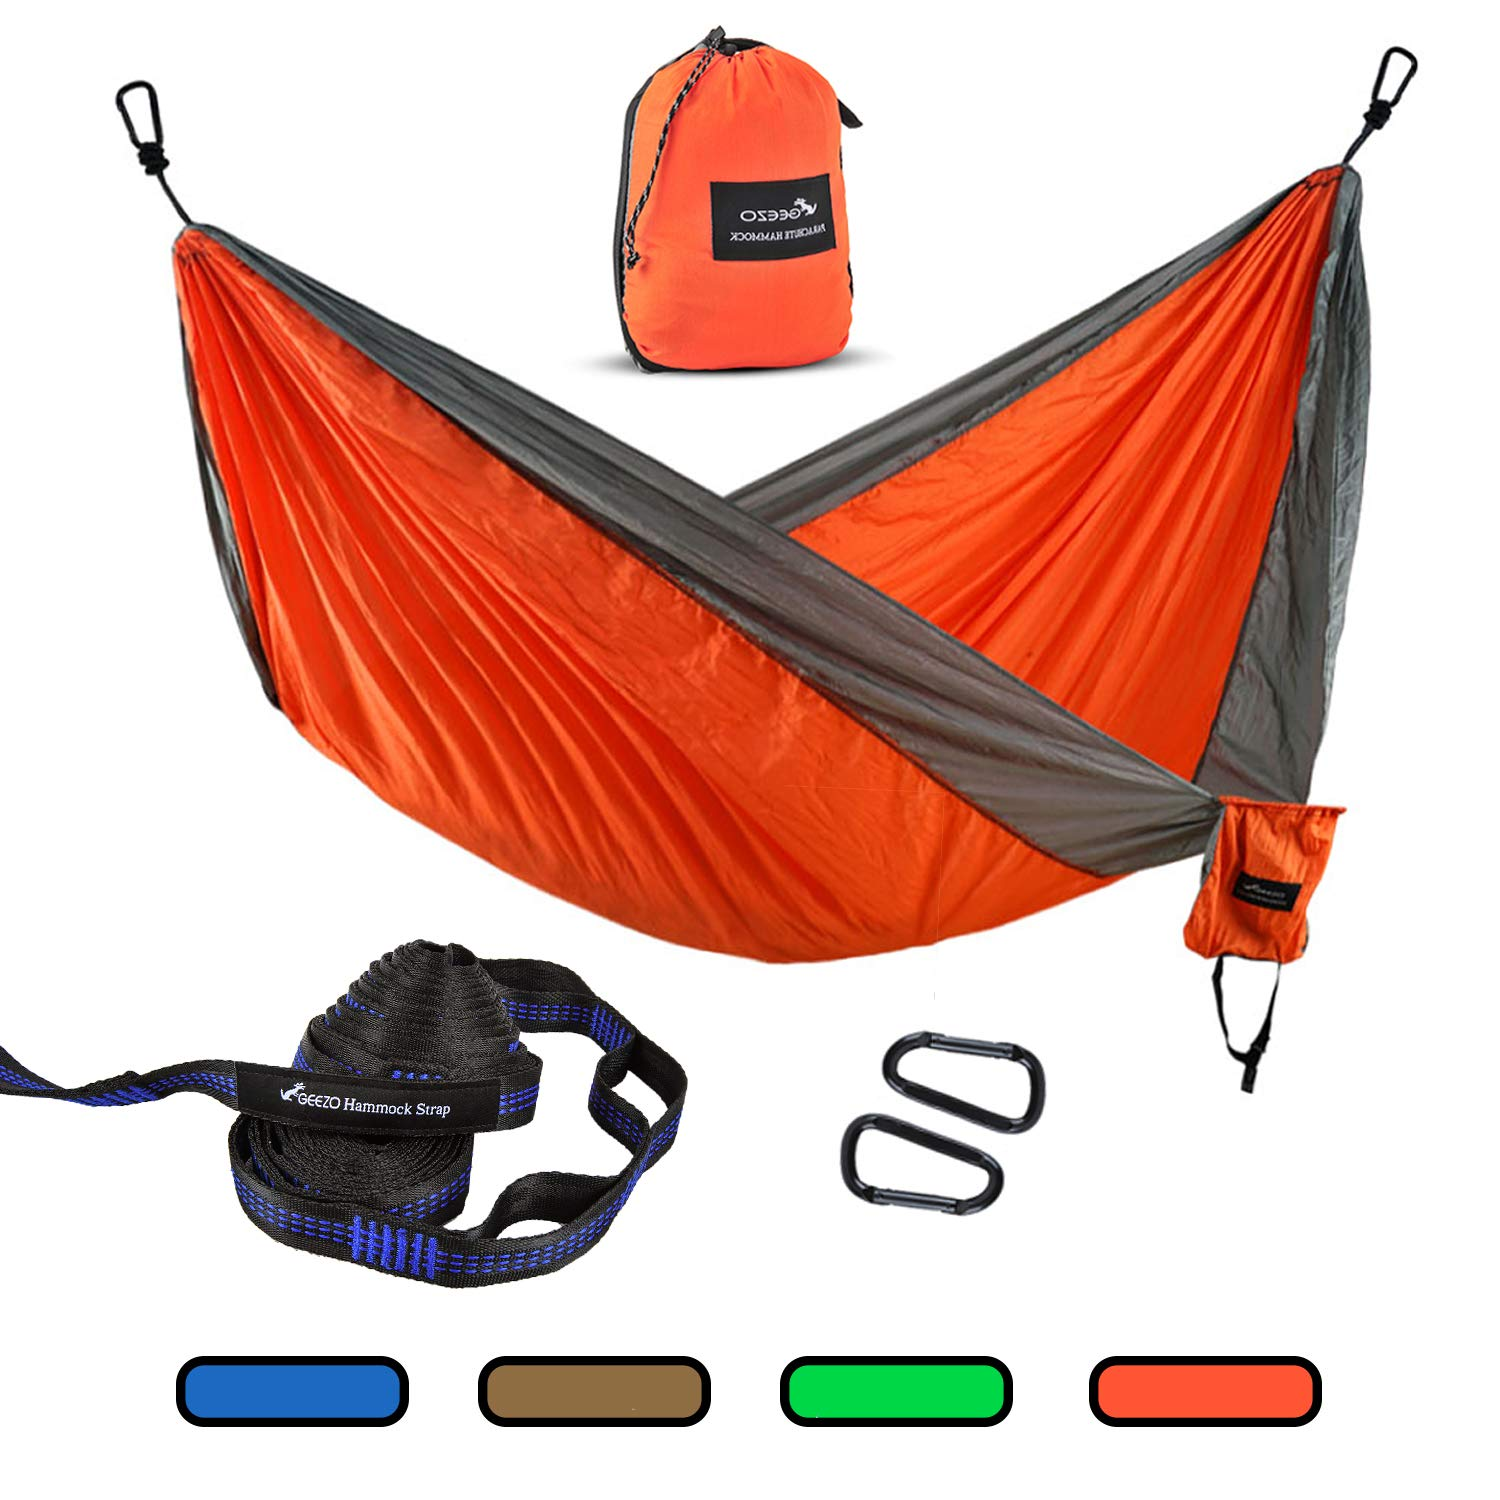 Geezo Double Camping Hammock, Lightweight Portable Parachute (2 Tree Straps 16 LOOPS/10 FT Included) 500lbs Capacity Hammock for Backpacking, Camping, Travel, Beach, Garden (Orange) by Geezo